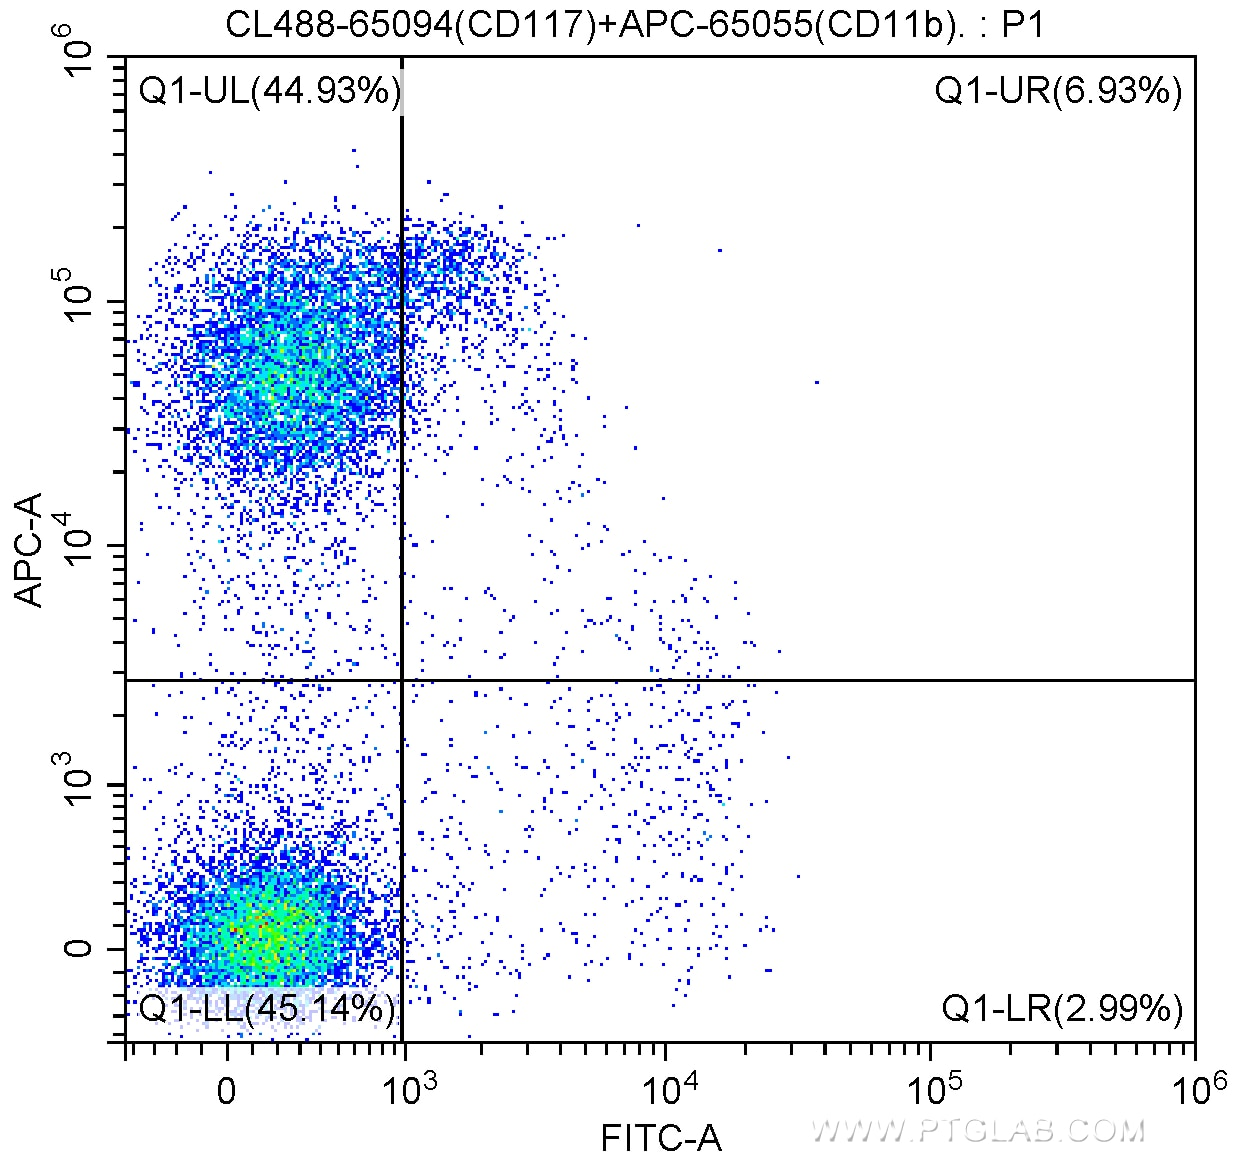 FC experiment of mouse bone marrow cells using CL488-65094